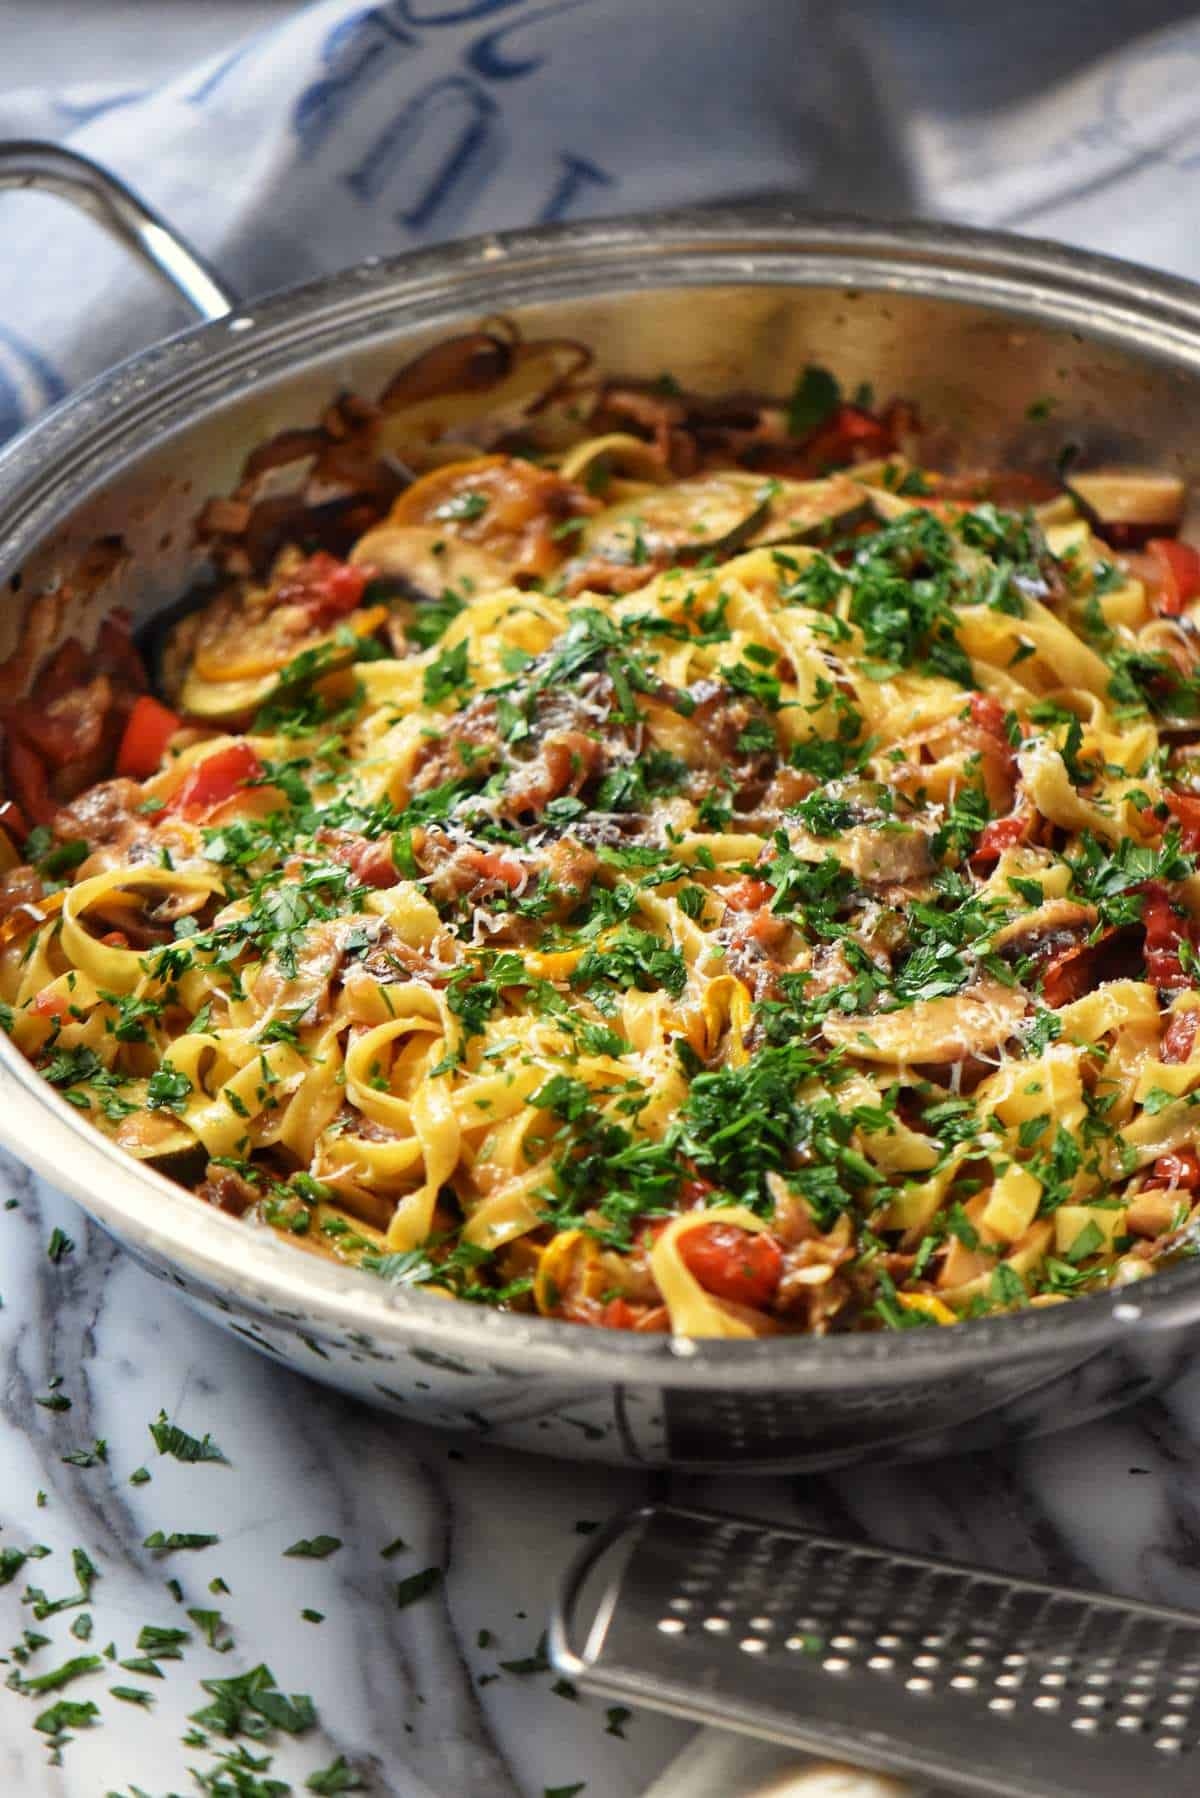 Roasted Vegetable Pasta combined together in a pan, with a sprinkle of minced Italian parsley.